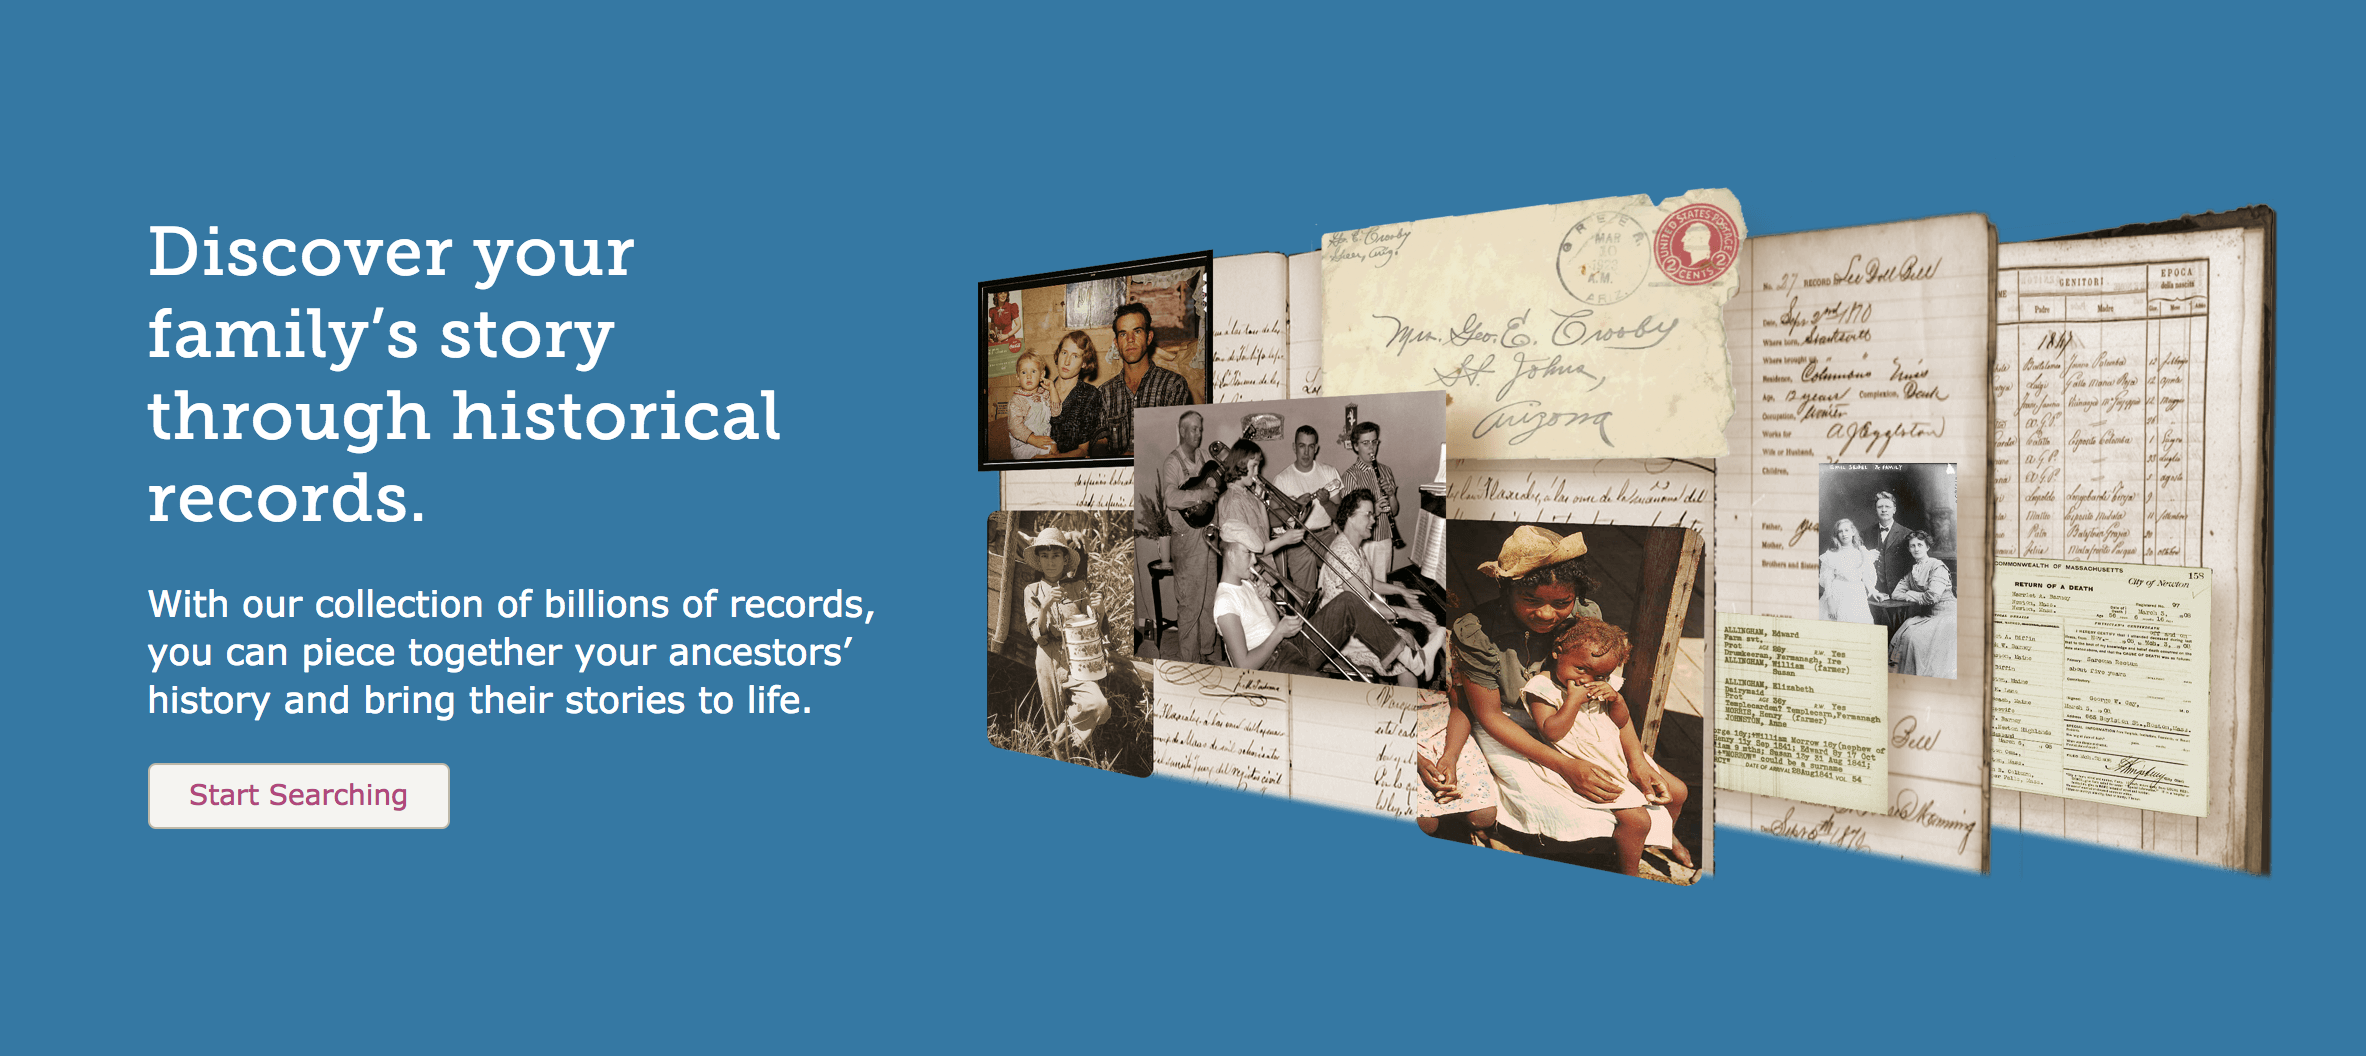 Discover your family's story through historical records.